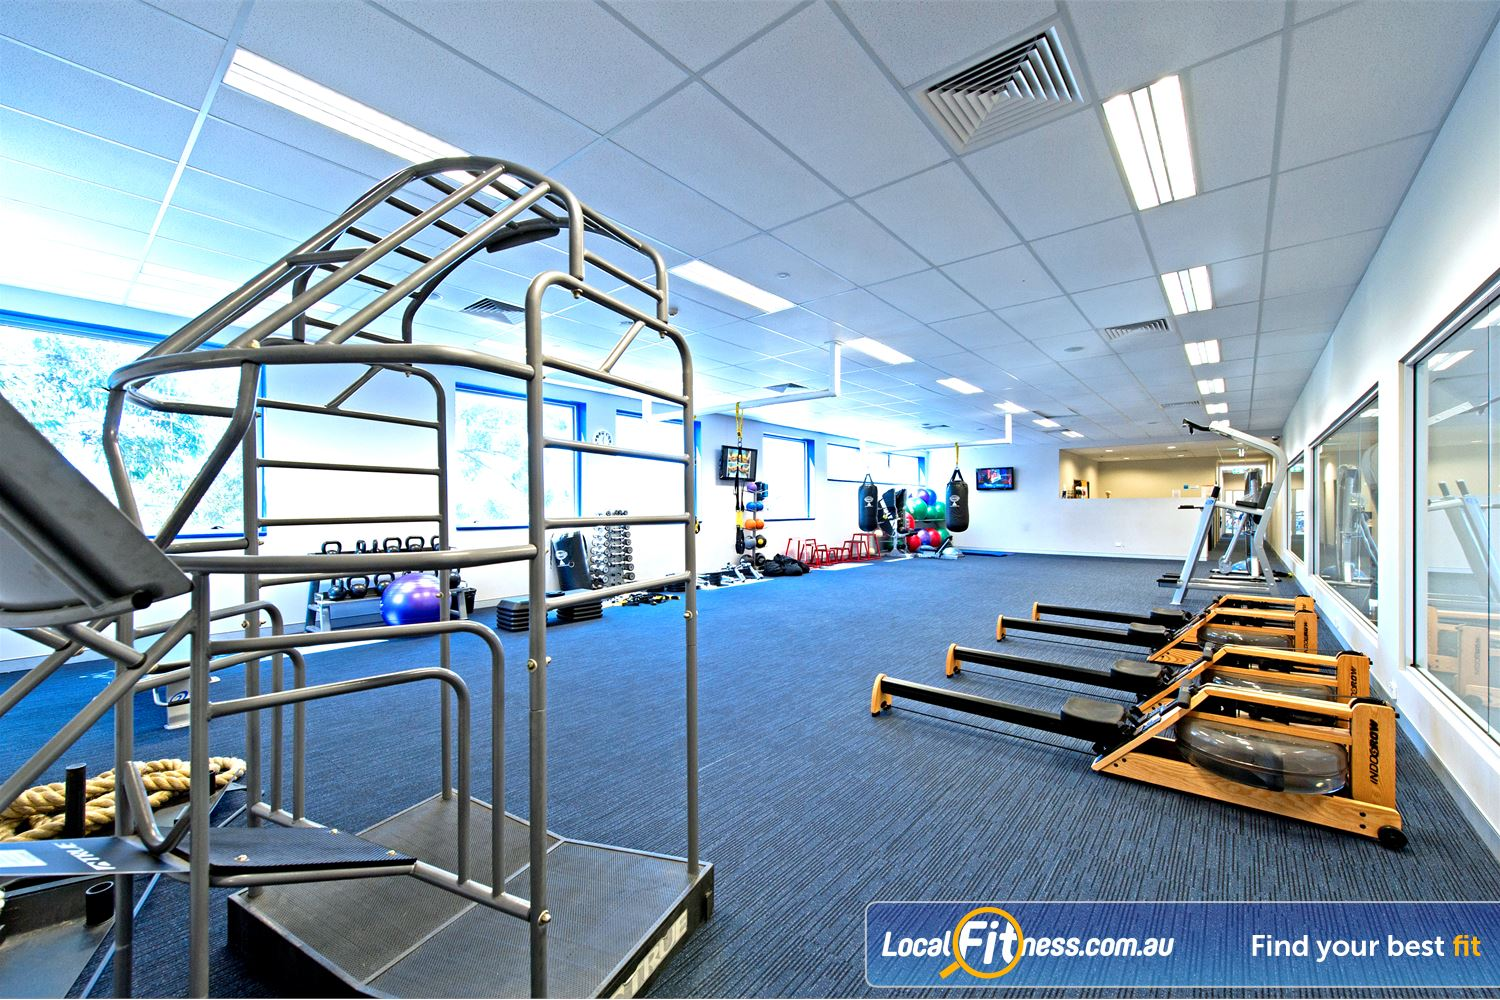 Genesis Fitness Clubs Parramatta State of the art equipment from Nautilus.